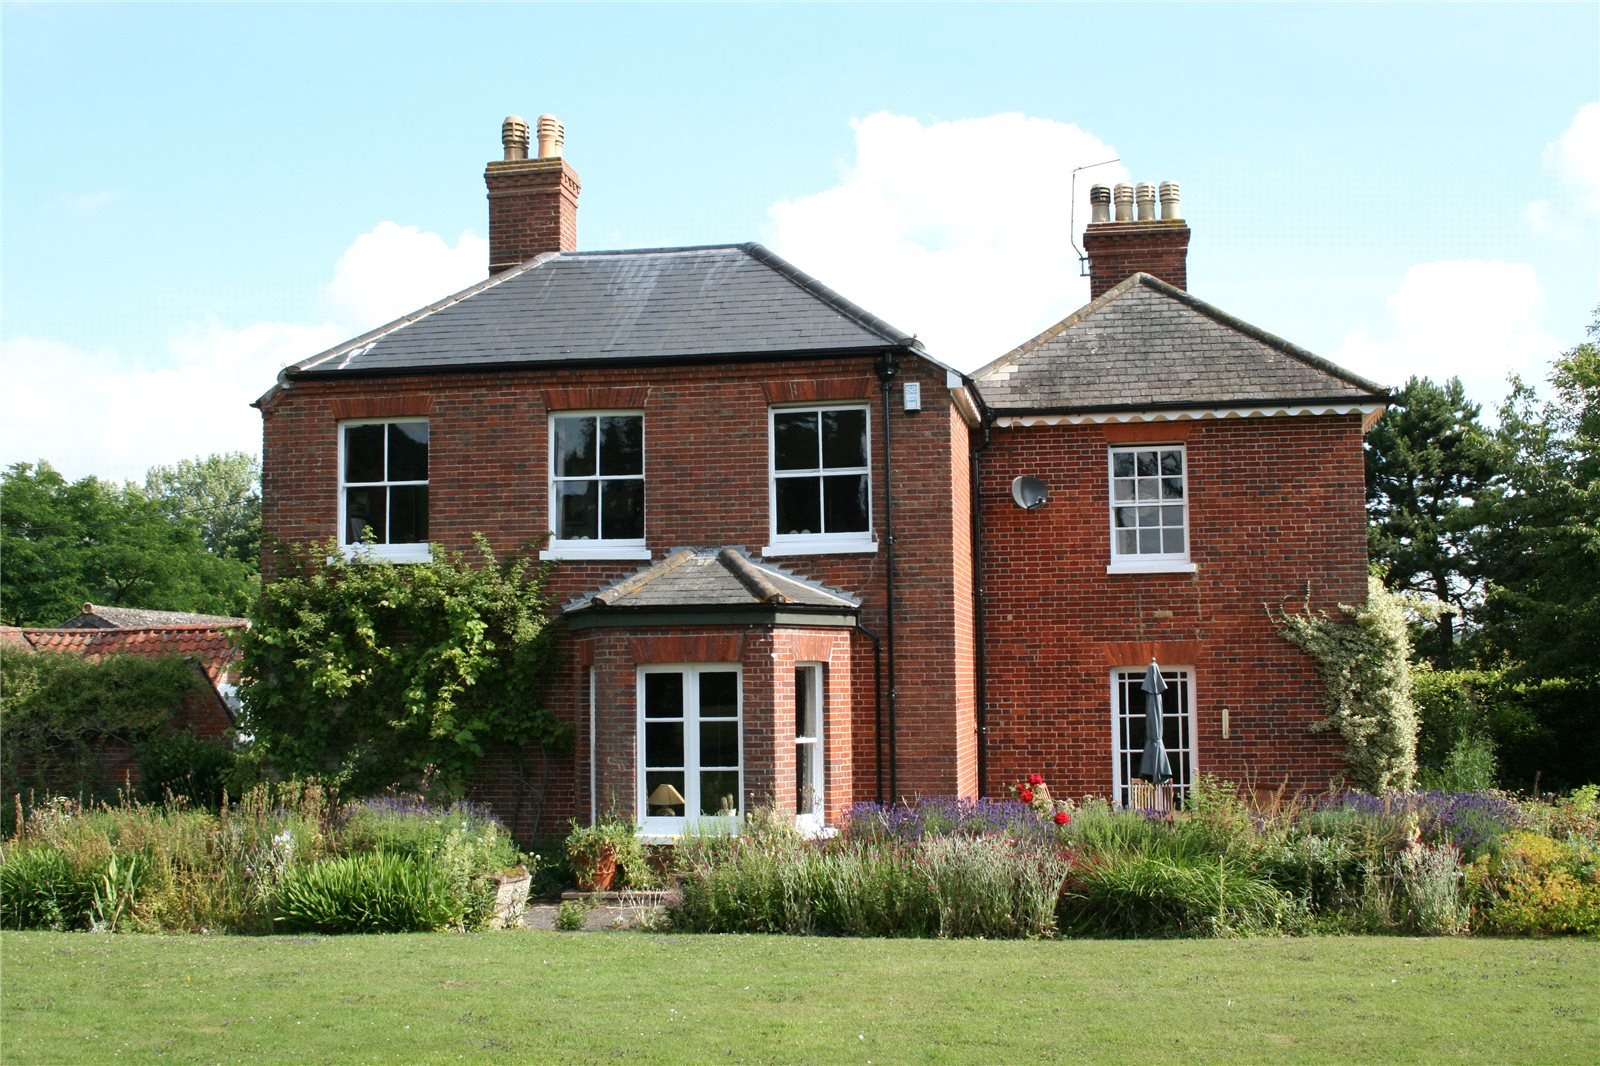 Single Family Home for Sale at Coston, Nr Wymondham, Norfolk, NR9 Norfolk, England